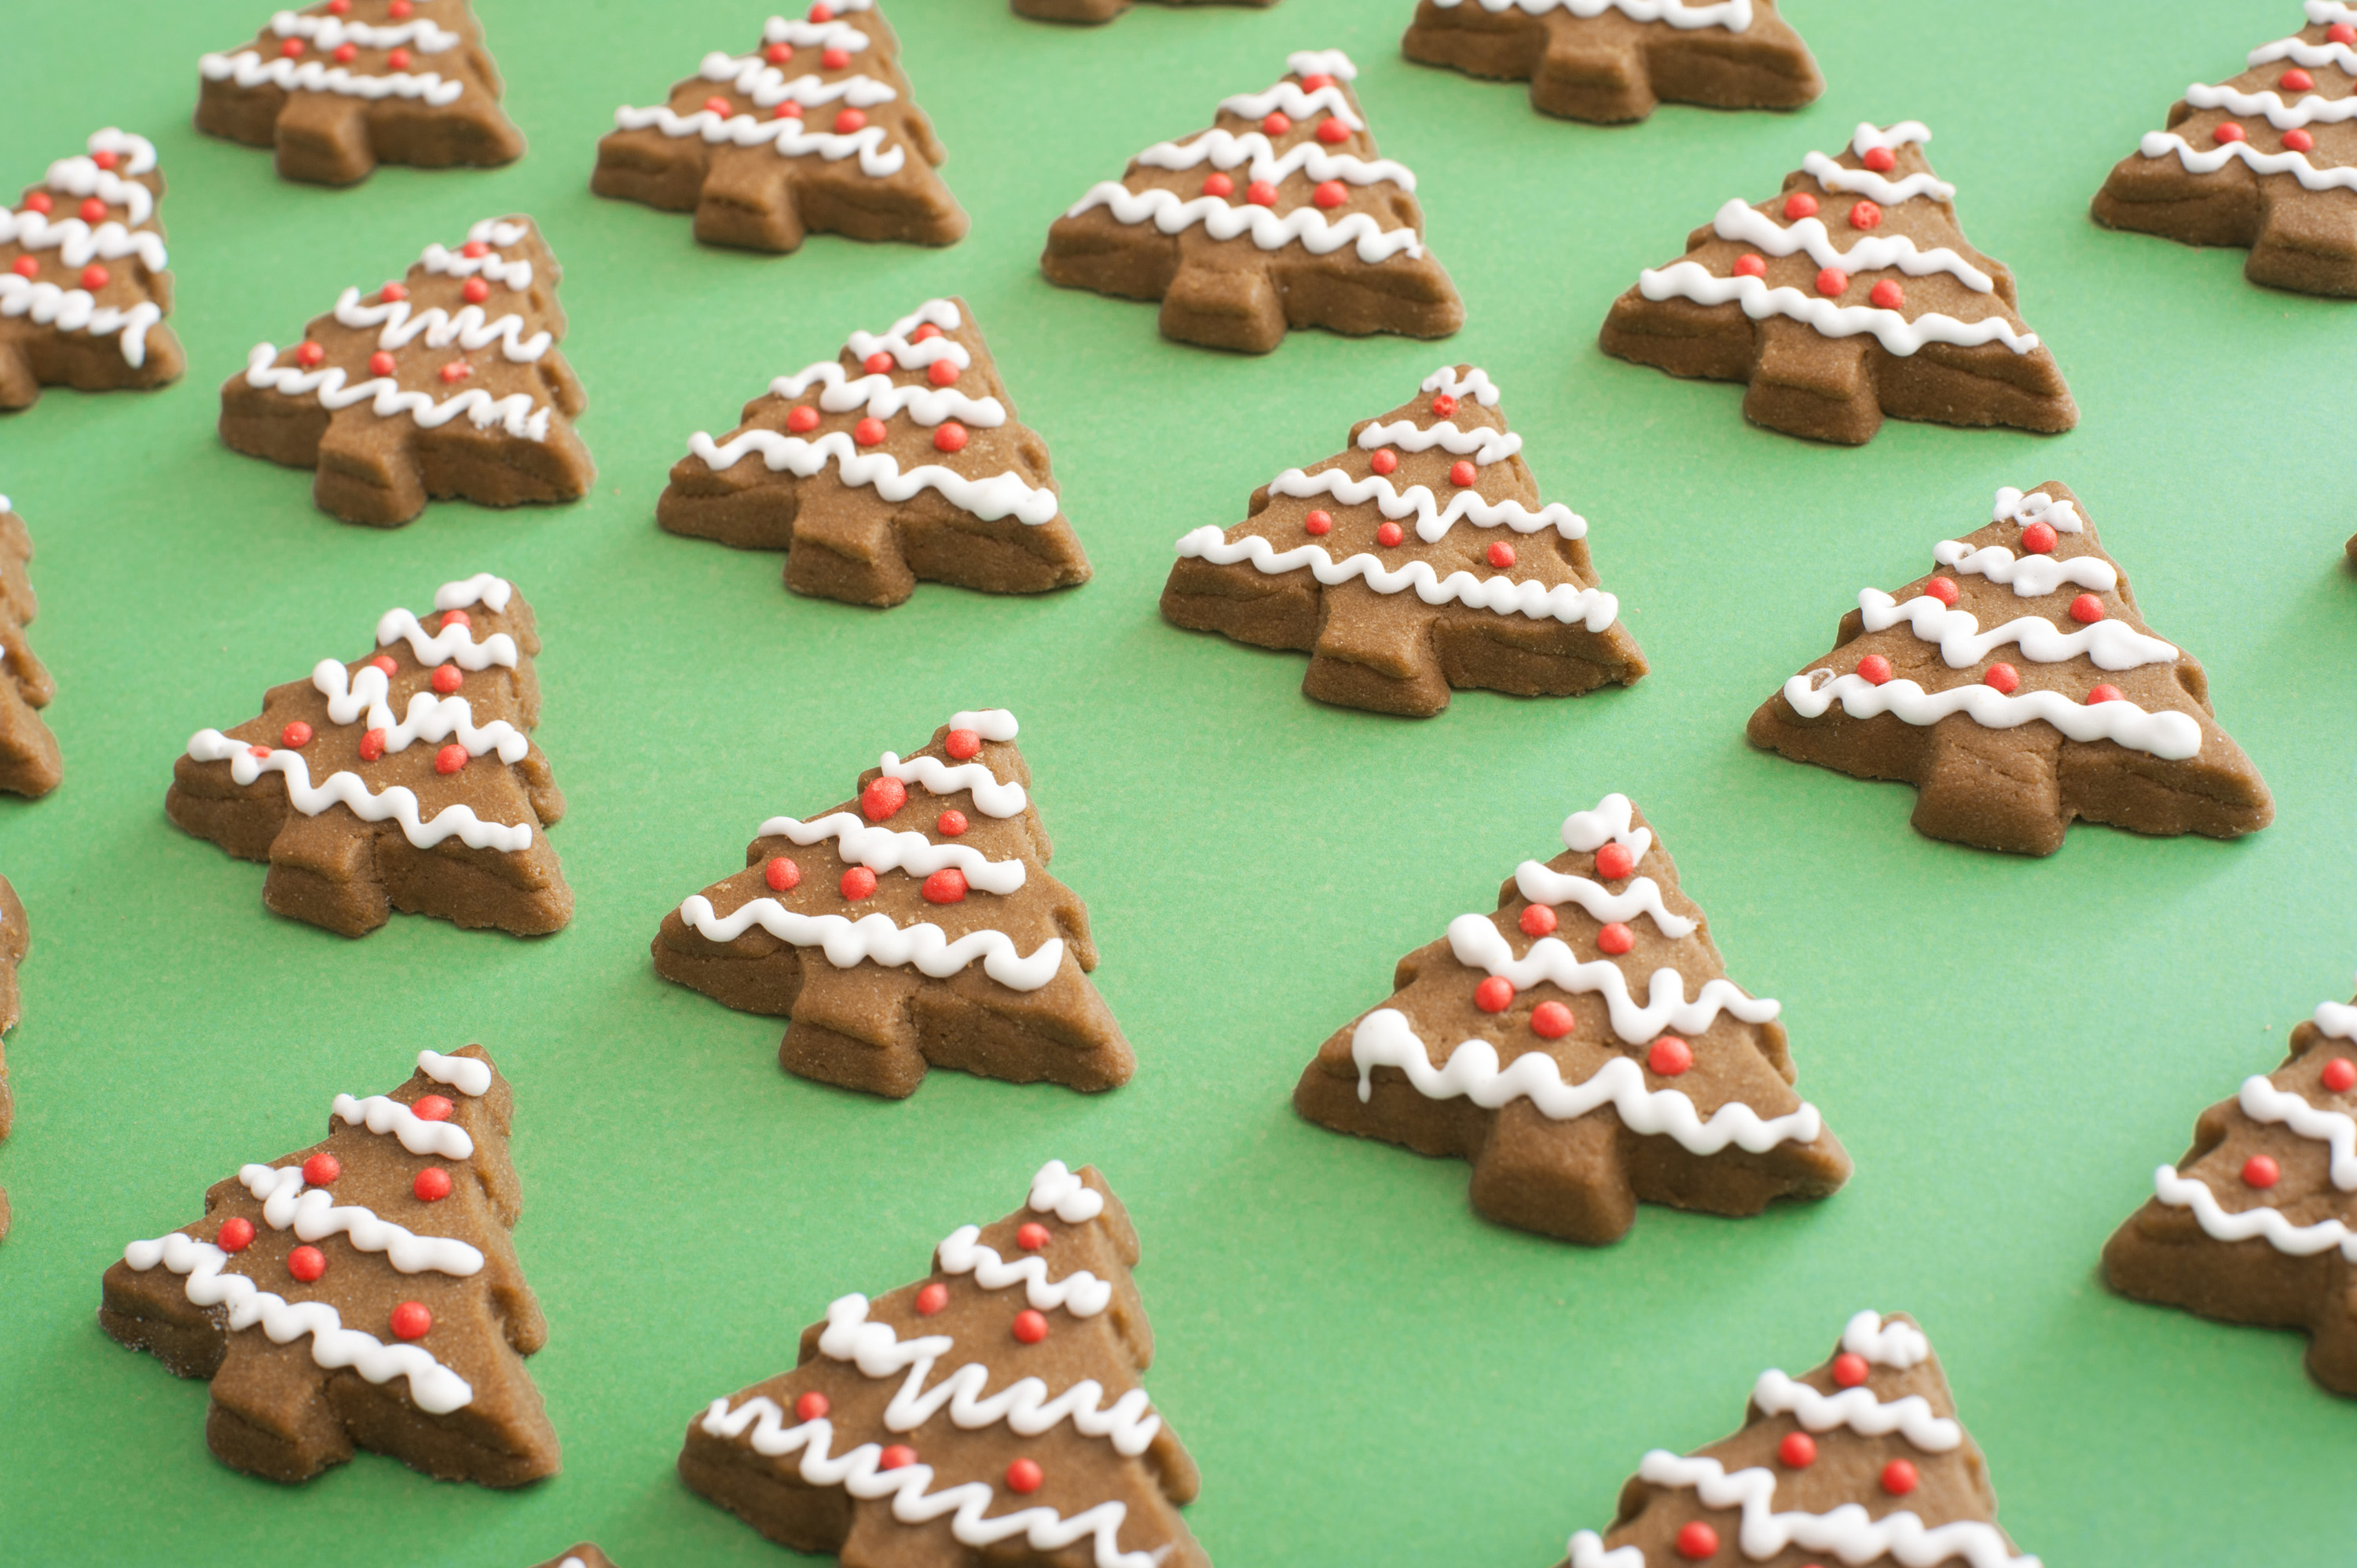 Christmas cookie gingerbread tree backdrop with decorative white and red icing in a high angle view on textured green paper